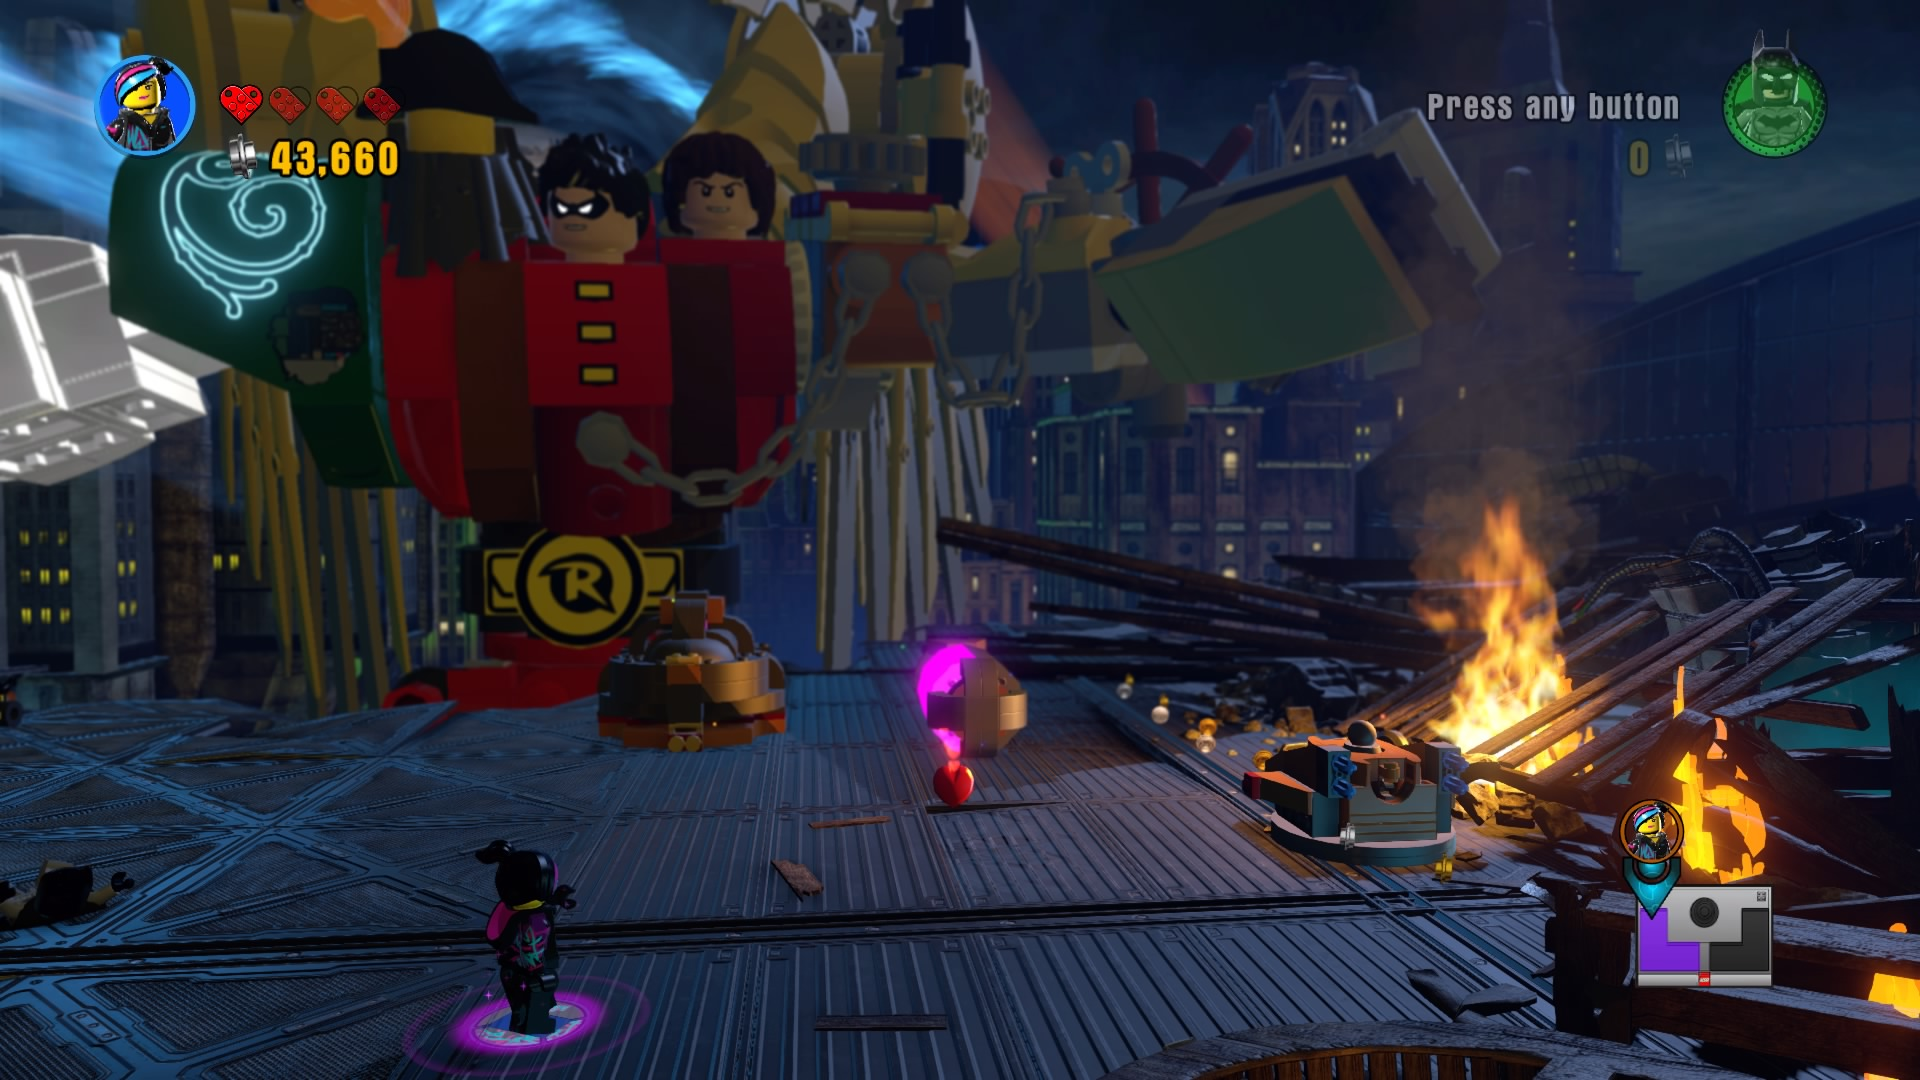 The worlds are colliding, and it's up to you to stop the Tri. Dodge his attacks until LEGO bricks fall from a rift. Break the glowing bricks and build ...